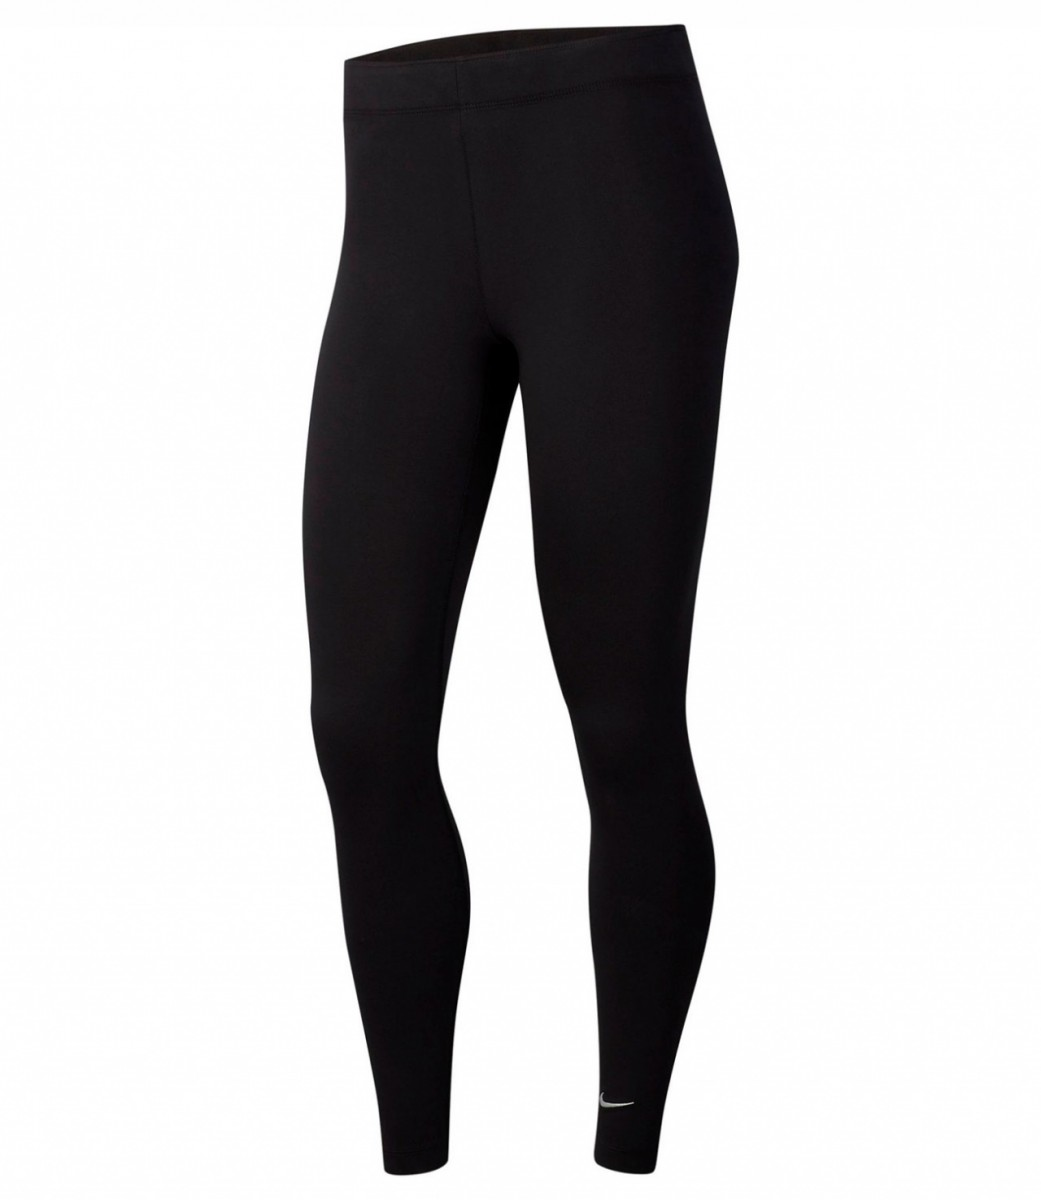 Леггинсы женские Nike Sportswear Club Legging black/white